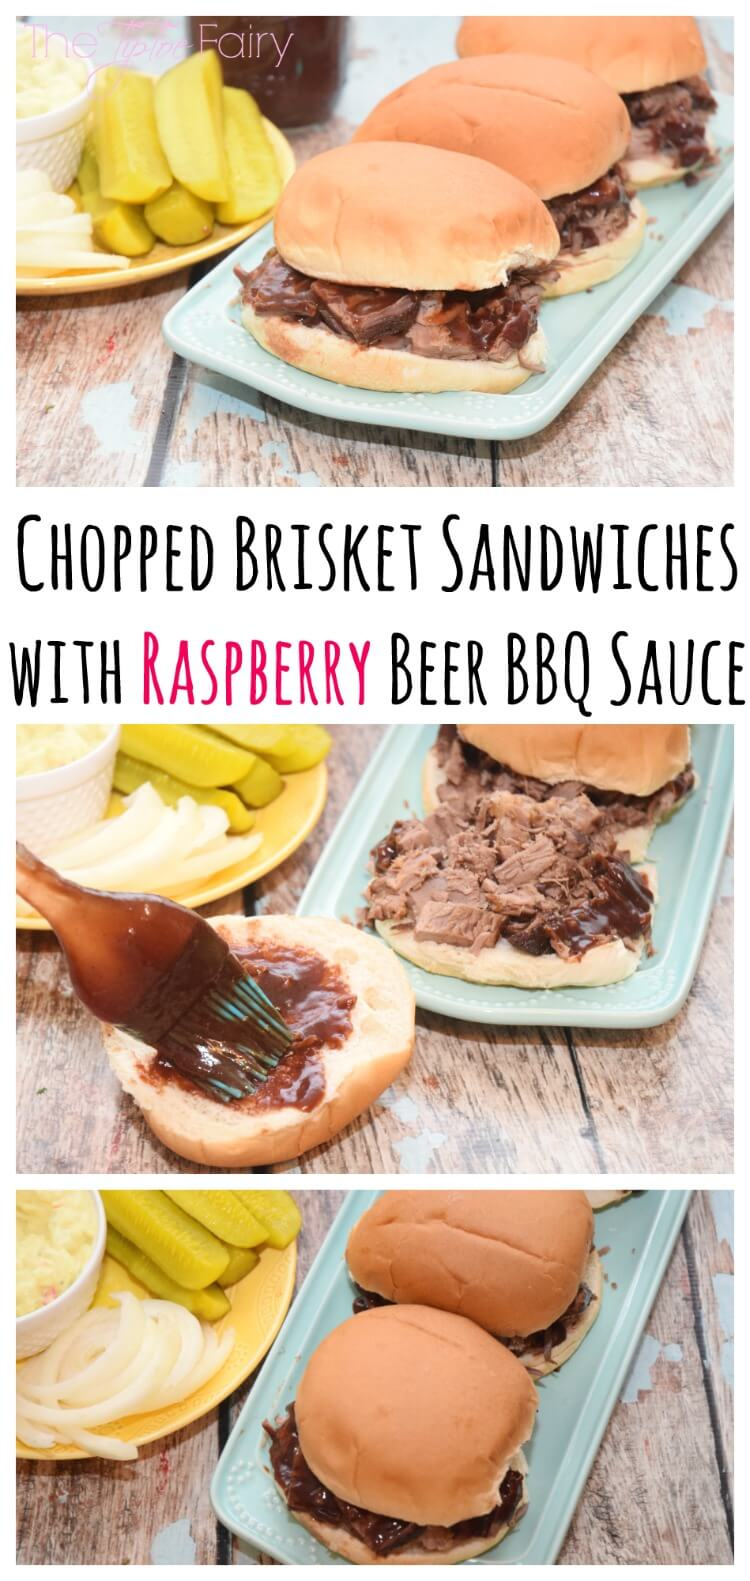 Easy Chopped Brisket Sandwiches w/Raspberry Beer BBQ Sauce! #ad #MyKCMasterpiece